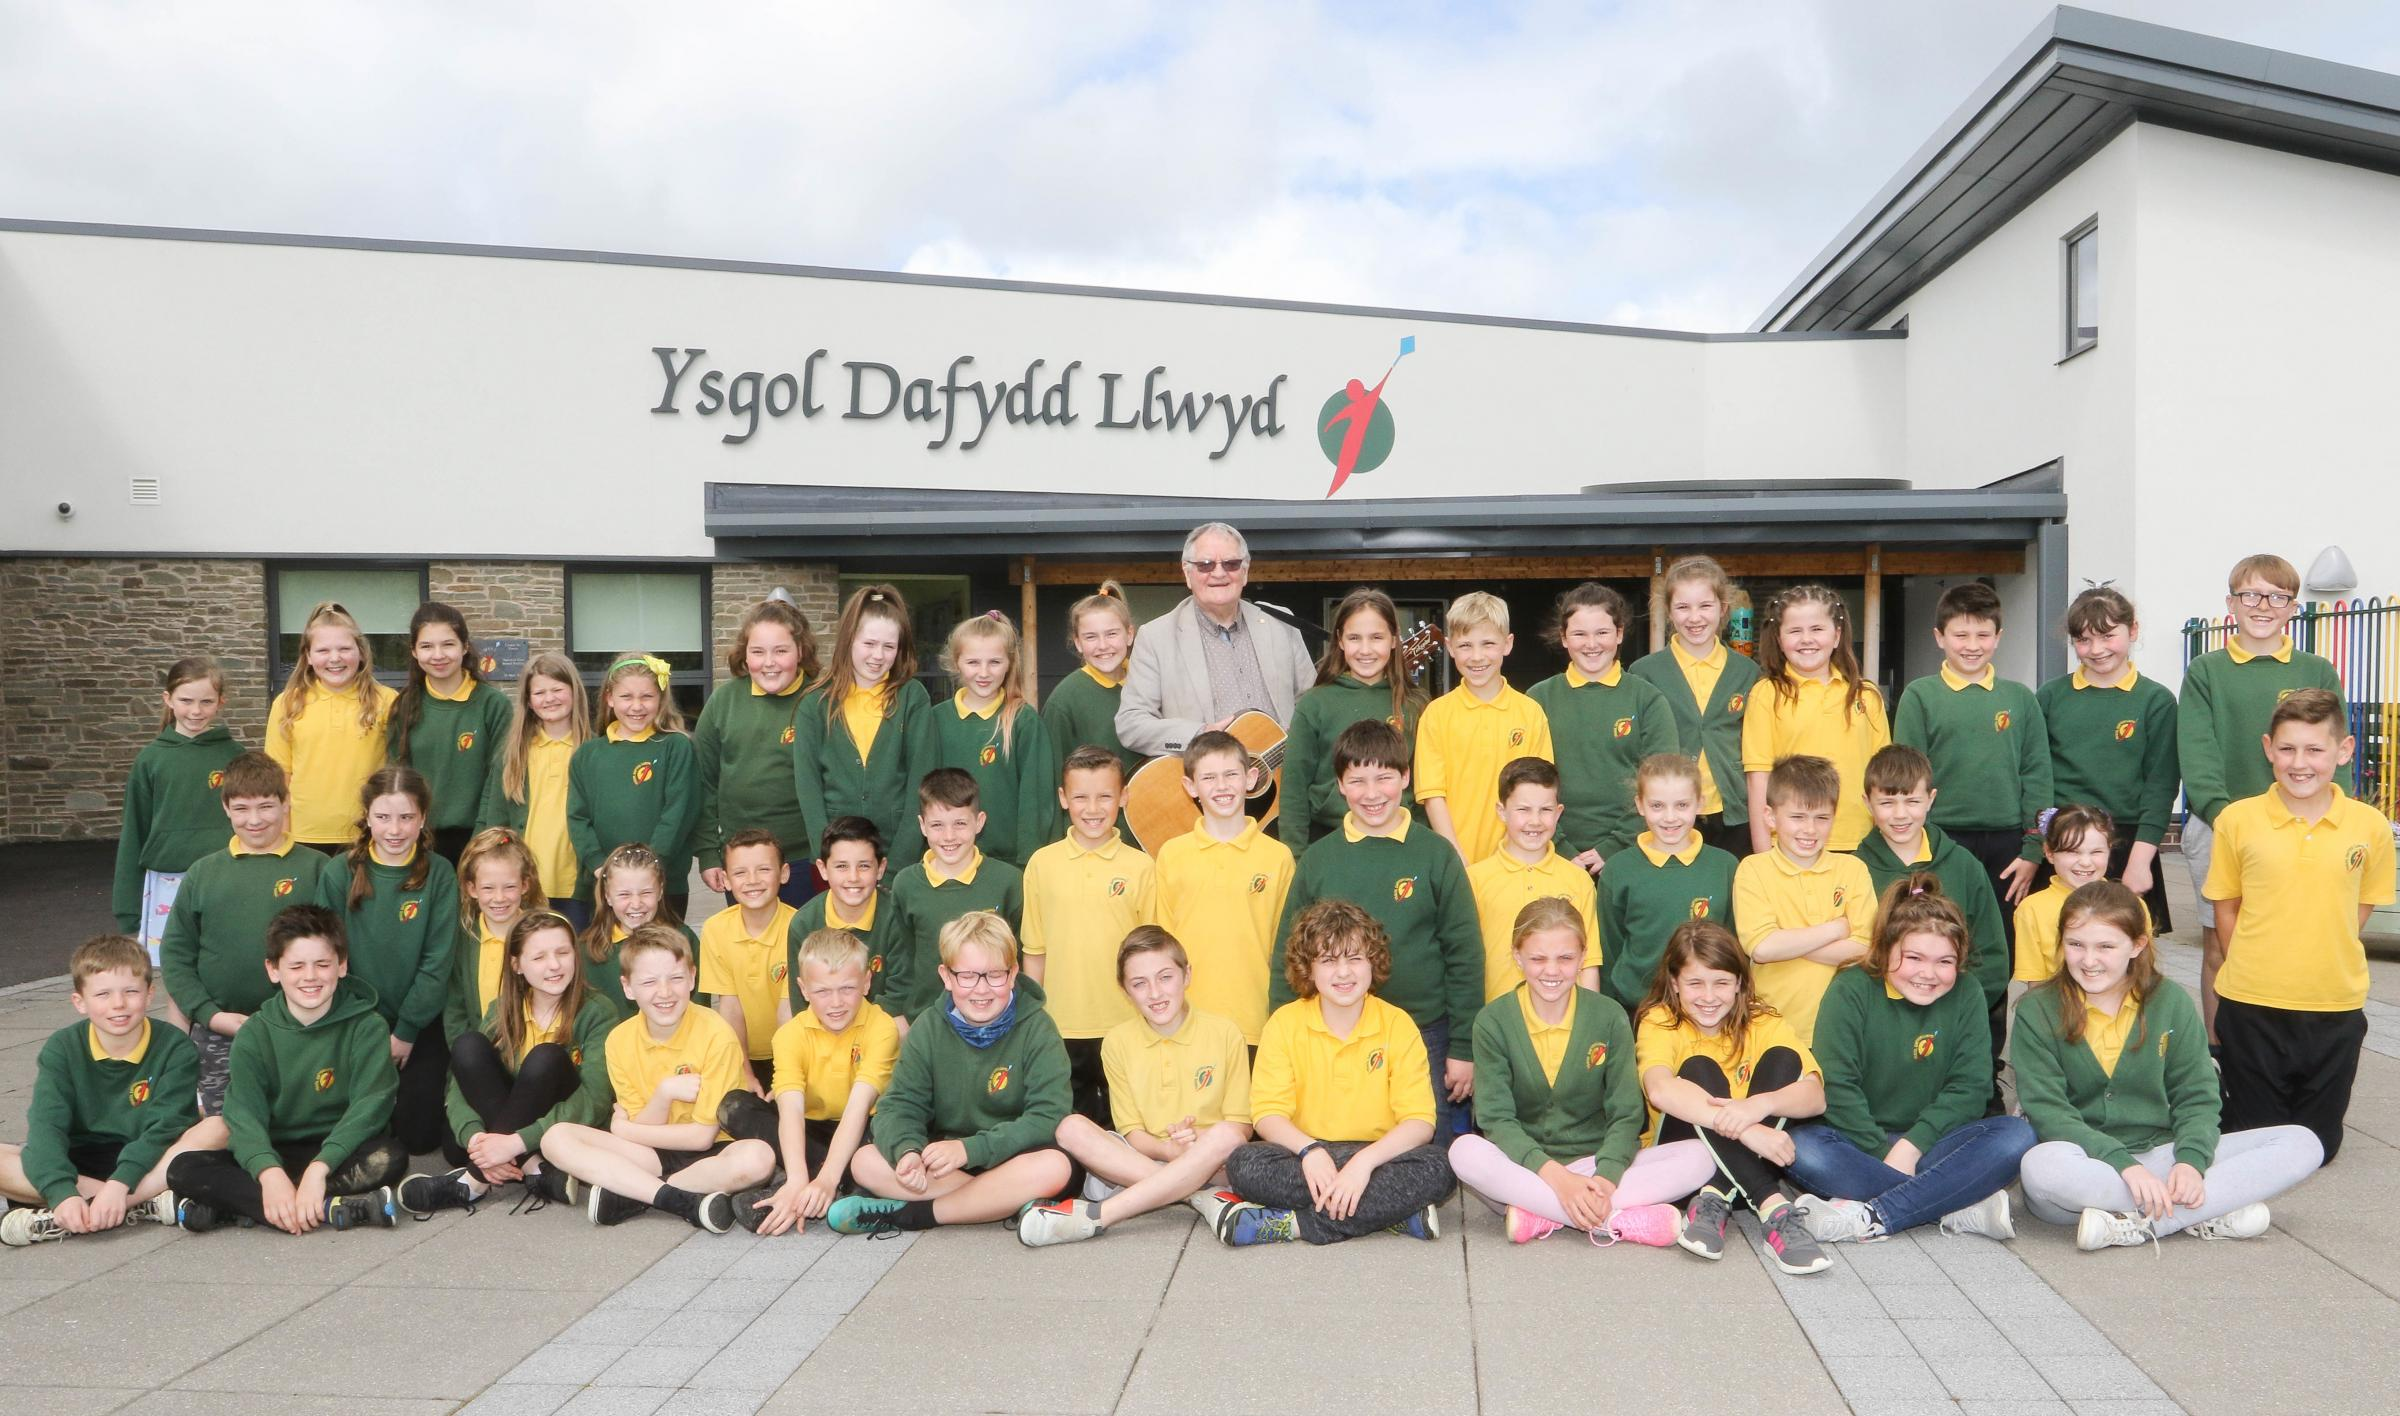 Welsh political and cultural legend Dafydd Iwan visited  Ysgol Dafydd Llwyd, Newtown last Thursday 2nd May 2019..He sang songs to the children, staff and community..Picture by Phil Blagg..PB203-2019-1.